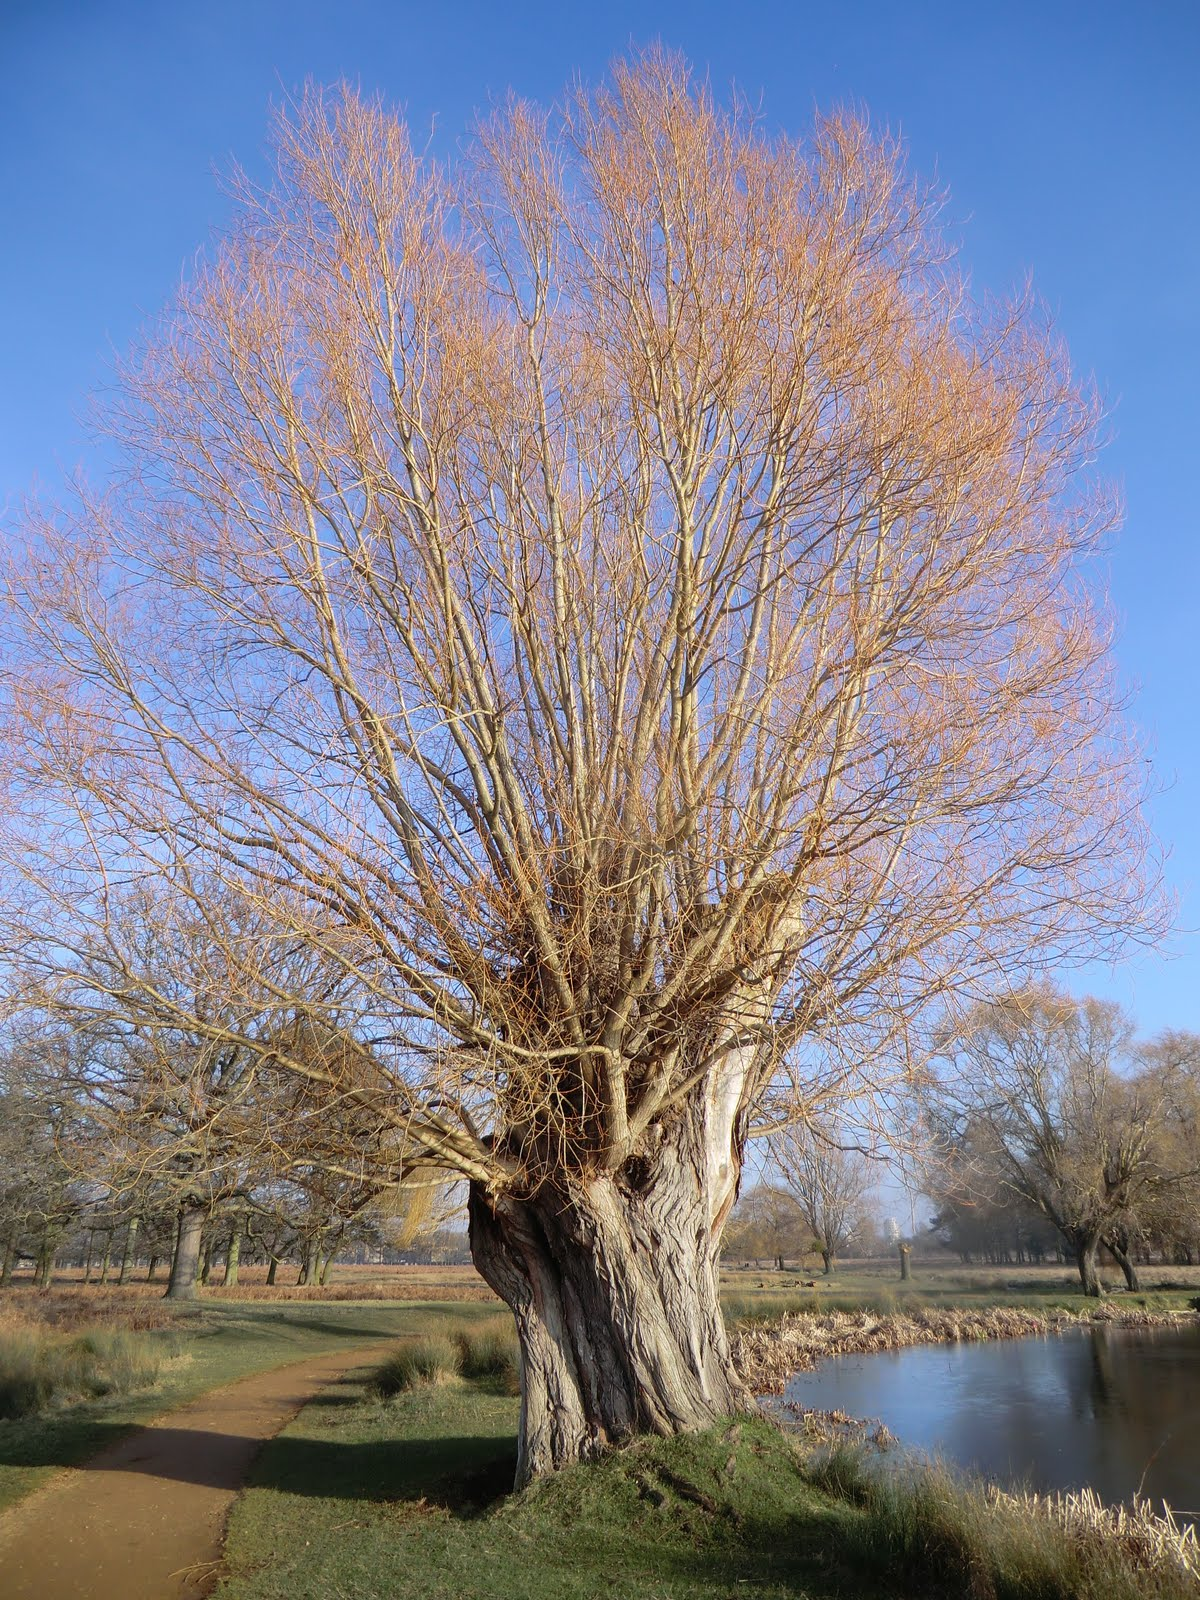 CIMG6456 Pollarded willow tree, Bushy Park